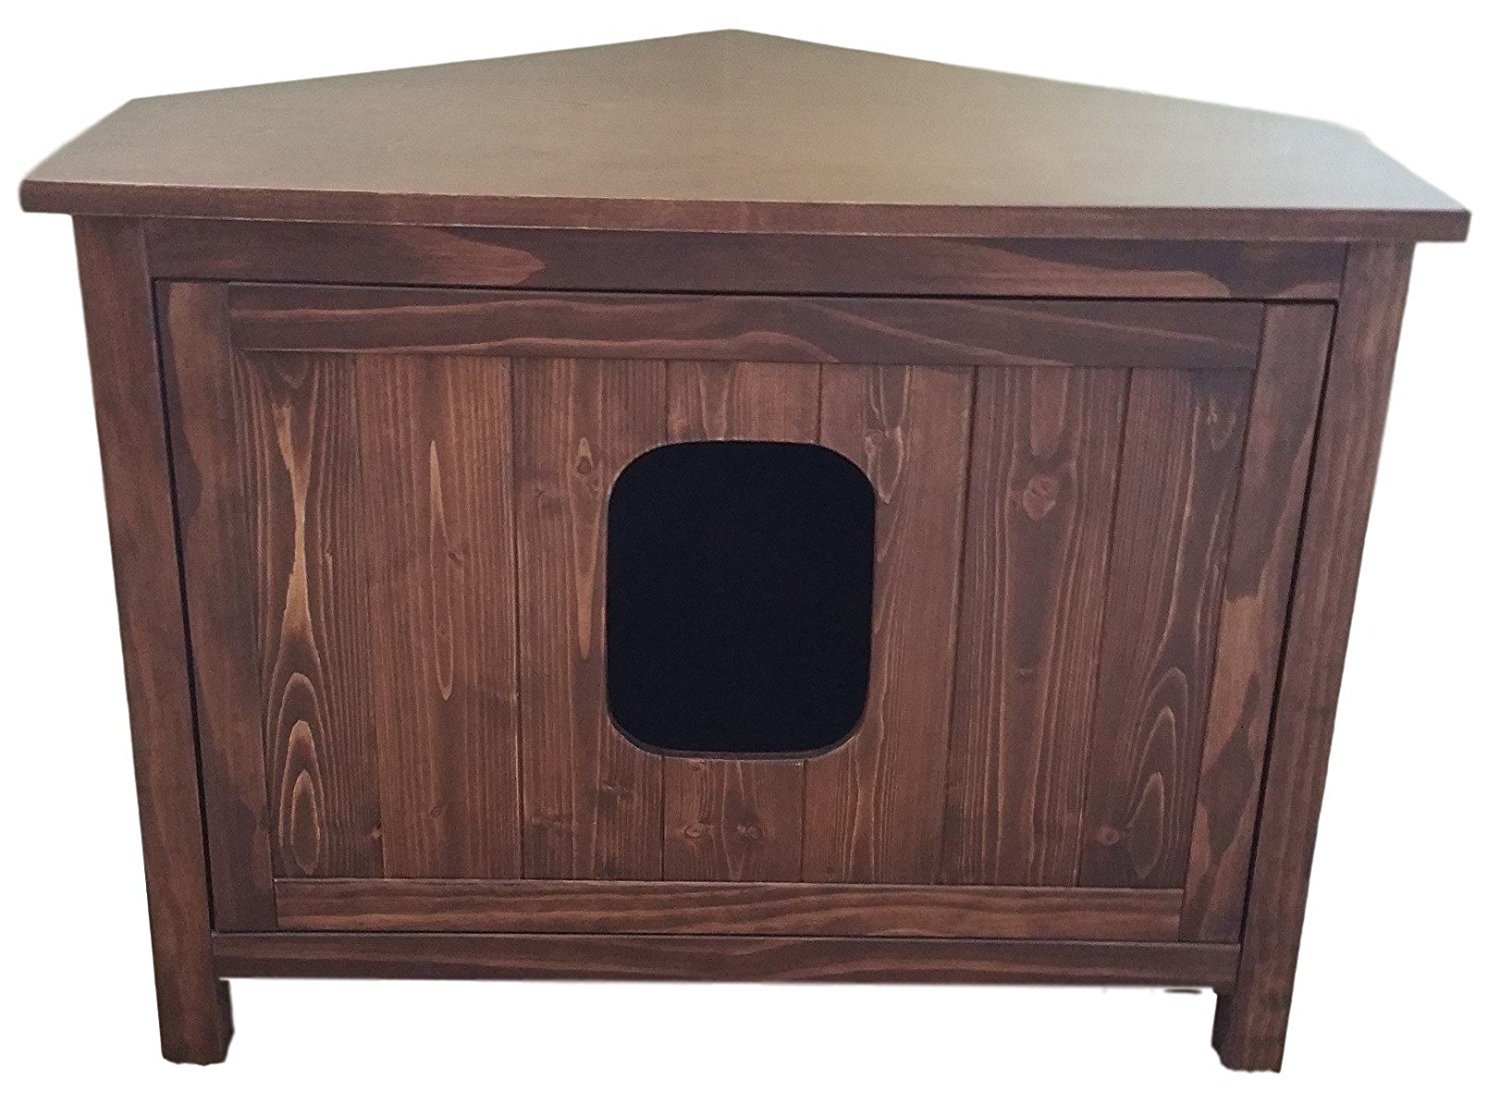 Odor Free Corner Cat Litter Box Cabinet.